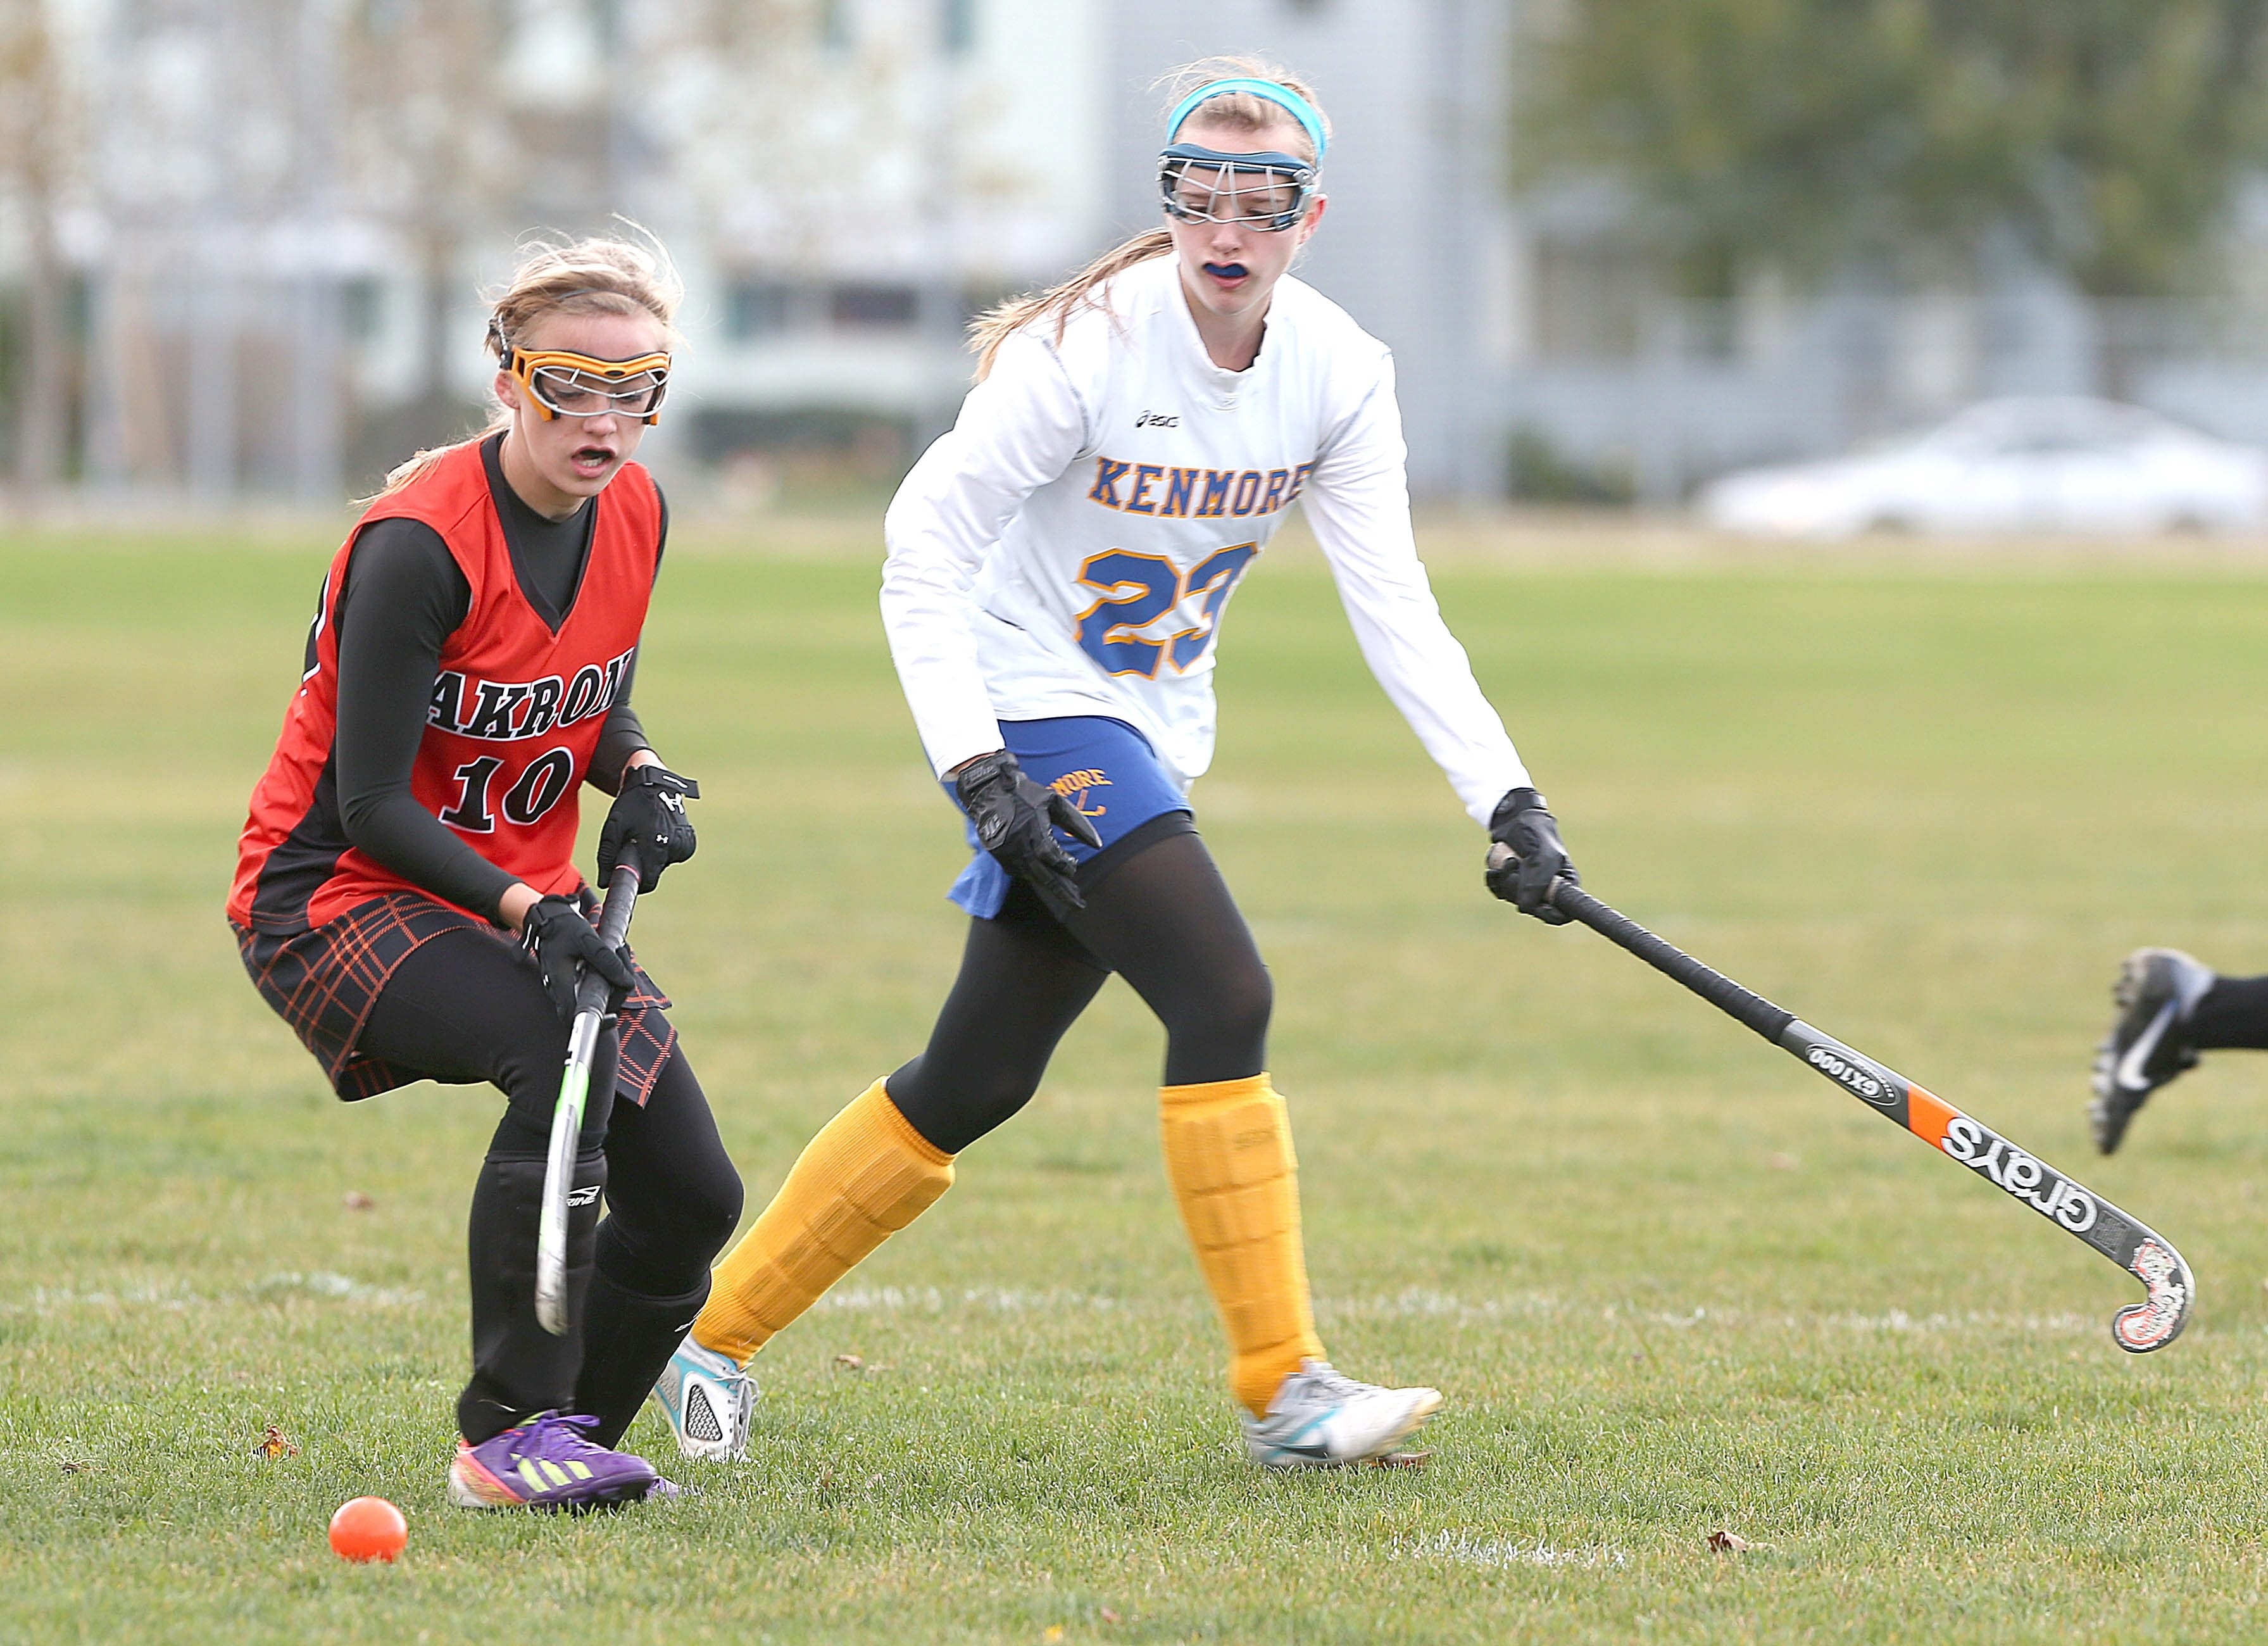 Kenmore's Kaitlyn Burke defends against Akron's Loriann Blenker during Tuesday's field hockey showdown. The teams played to a 1-1 tie.